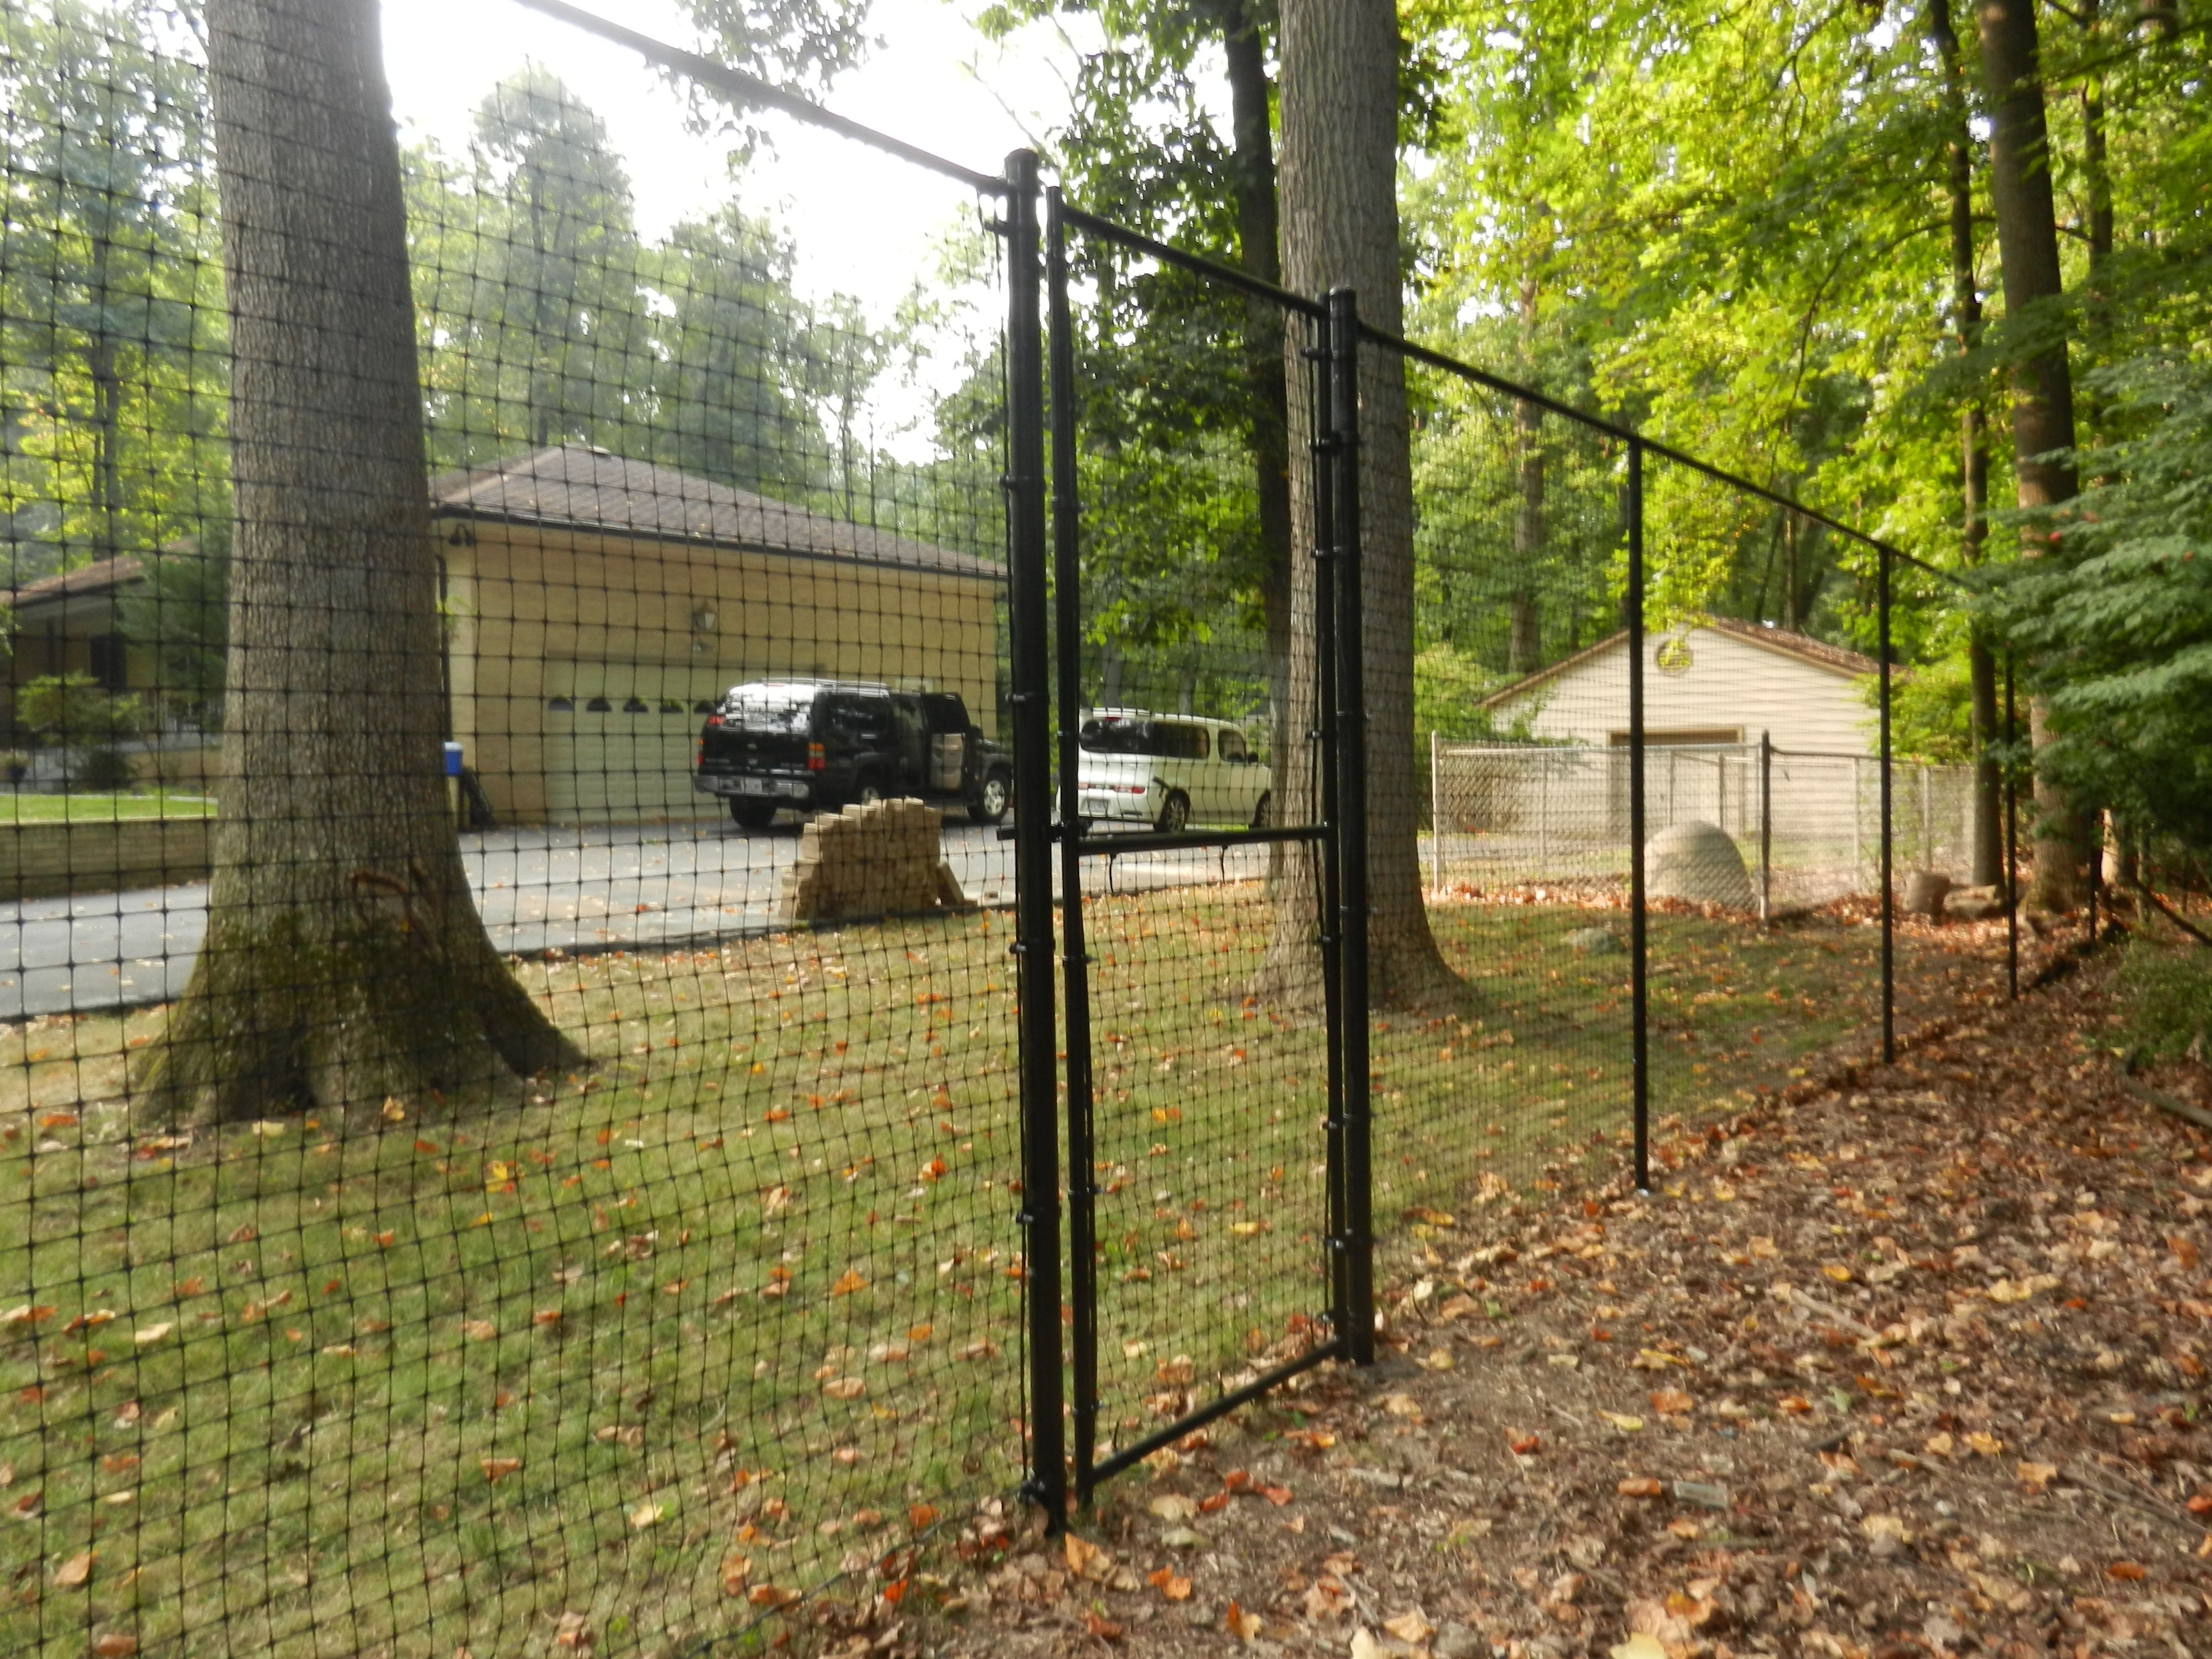 8 Foot Deer Fence With Top Rail Deer Fence Dog Proof Fence